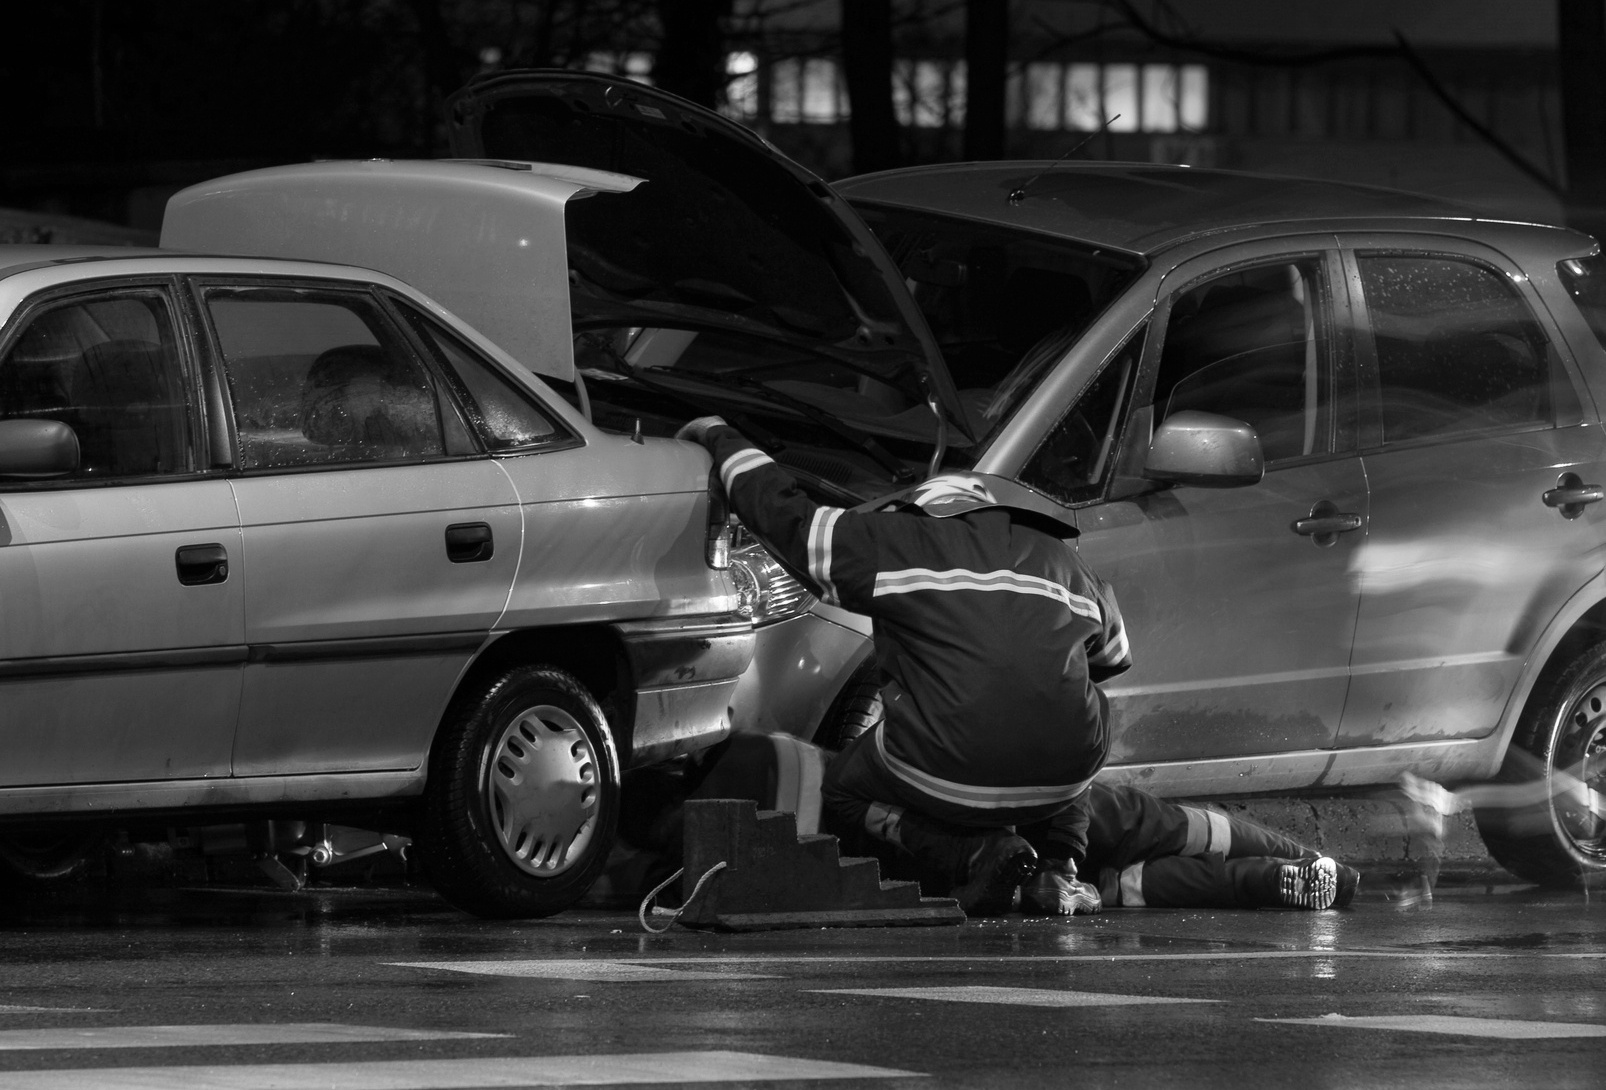 Johns Creek, Georgia Car Accident Injury Doctor